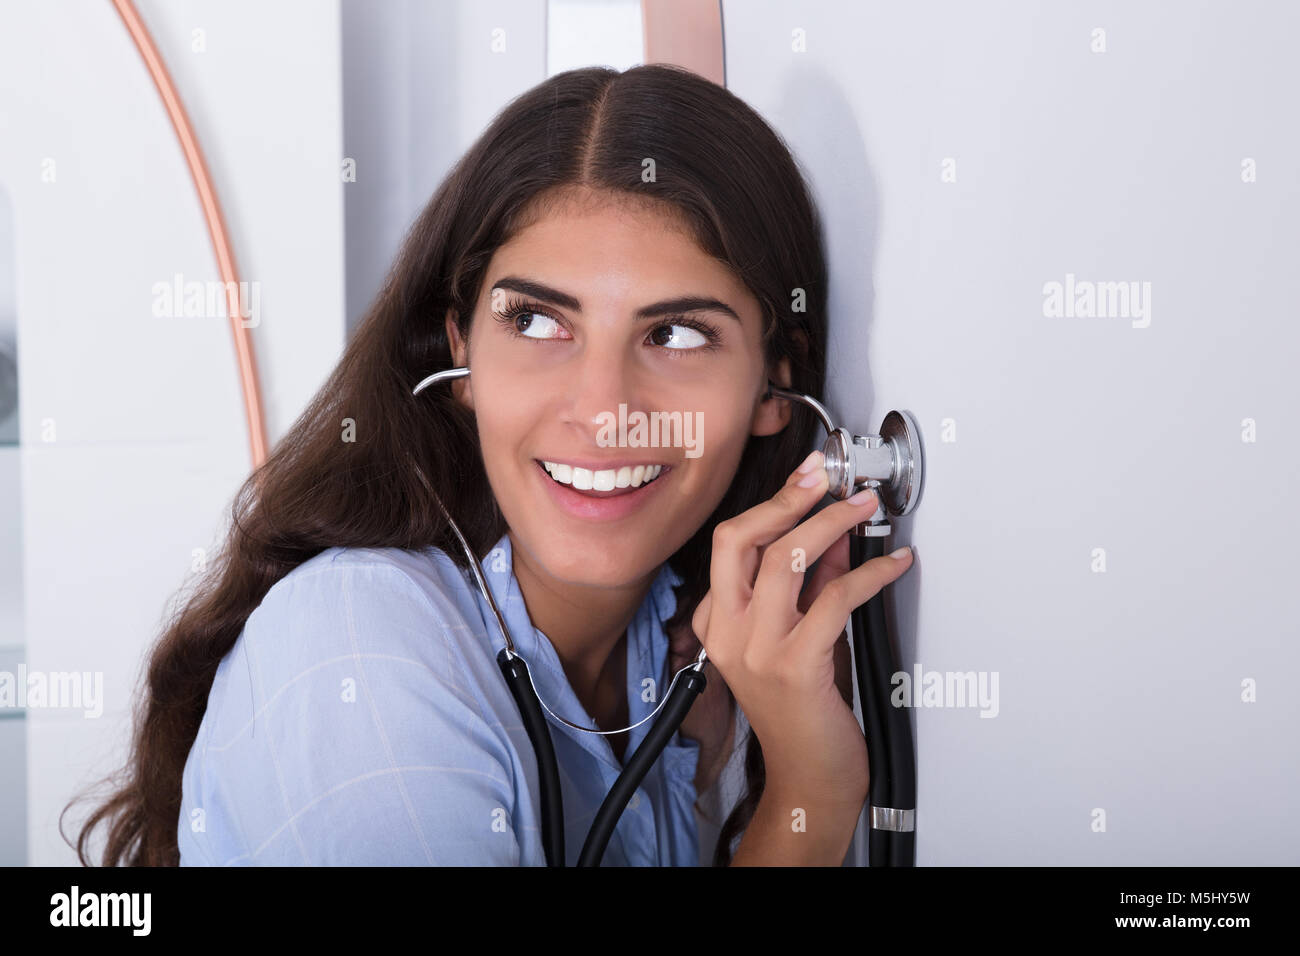 Young Curious Women Listening Through Wall Using Stethoscope - Stock Image